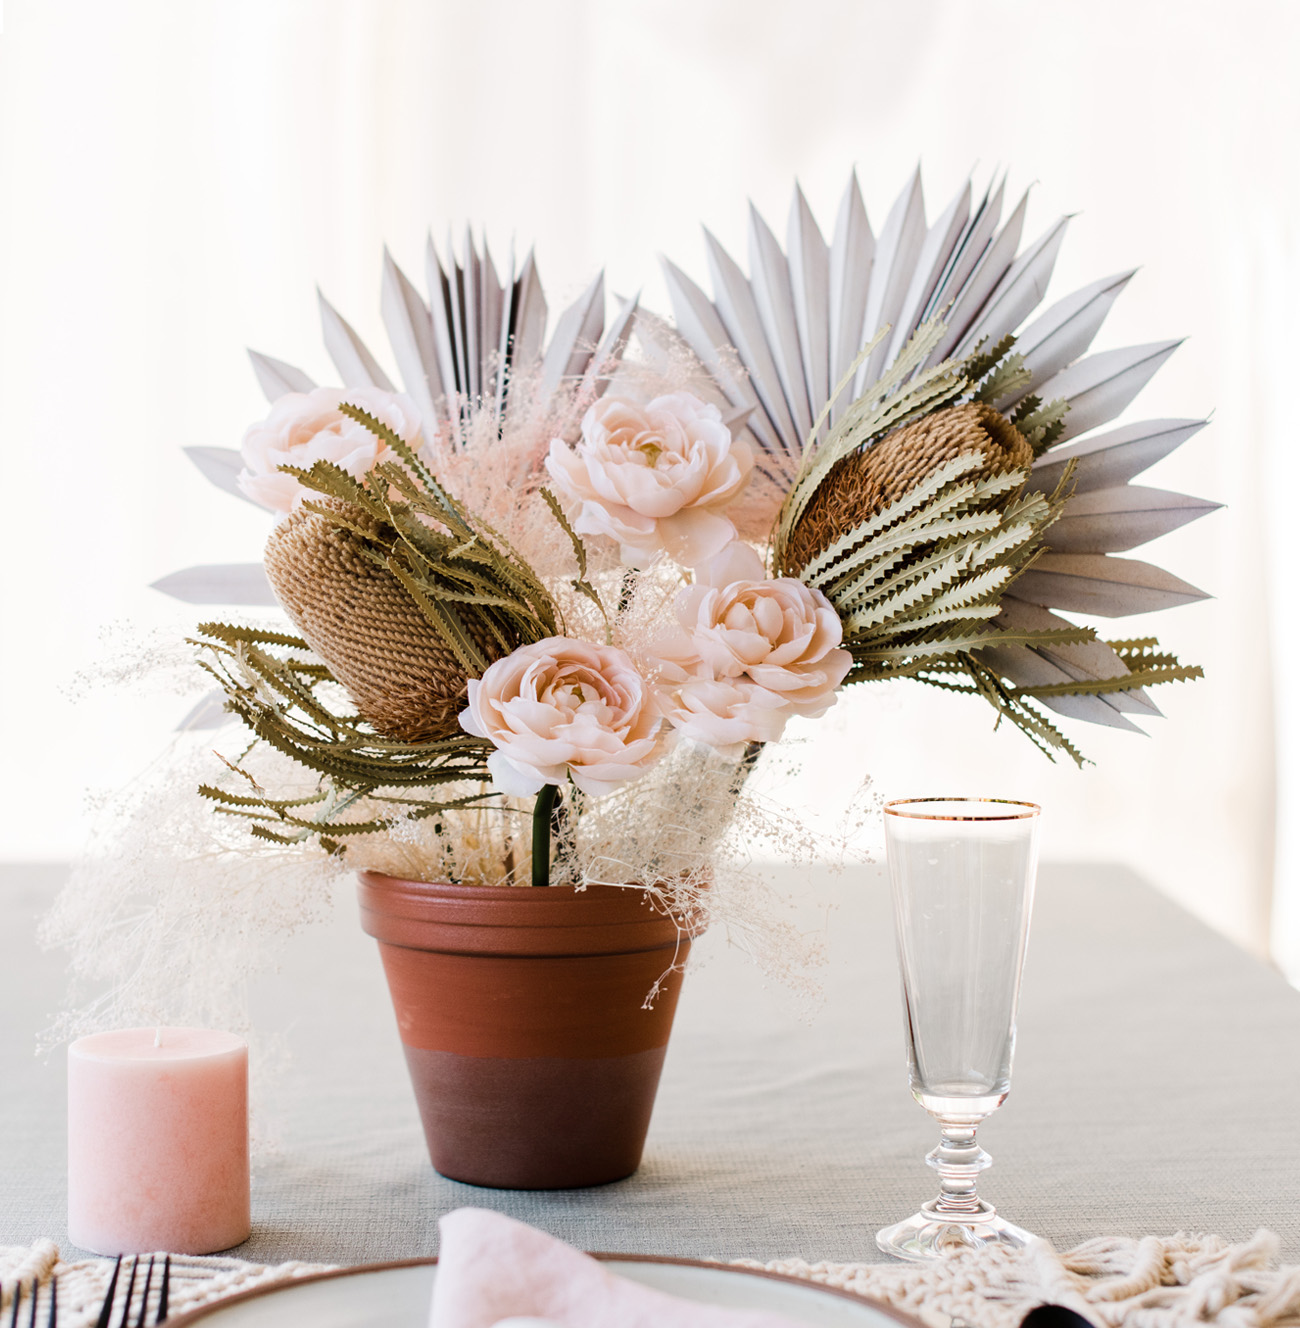 DIY spray painted floral centerpiece